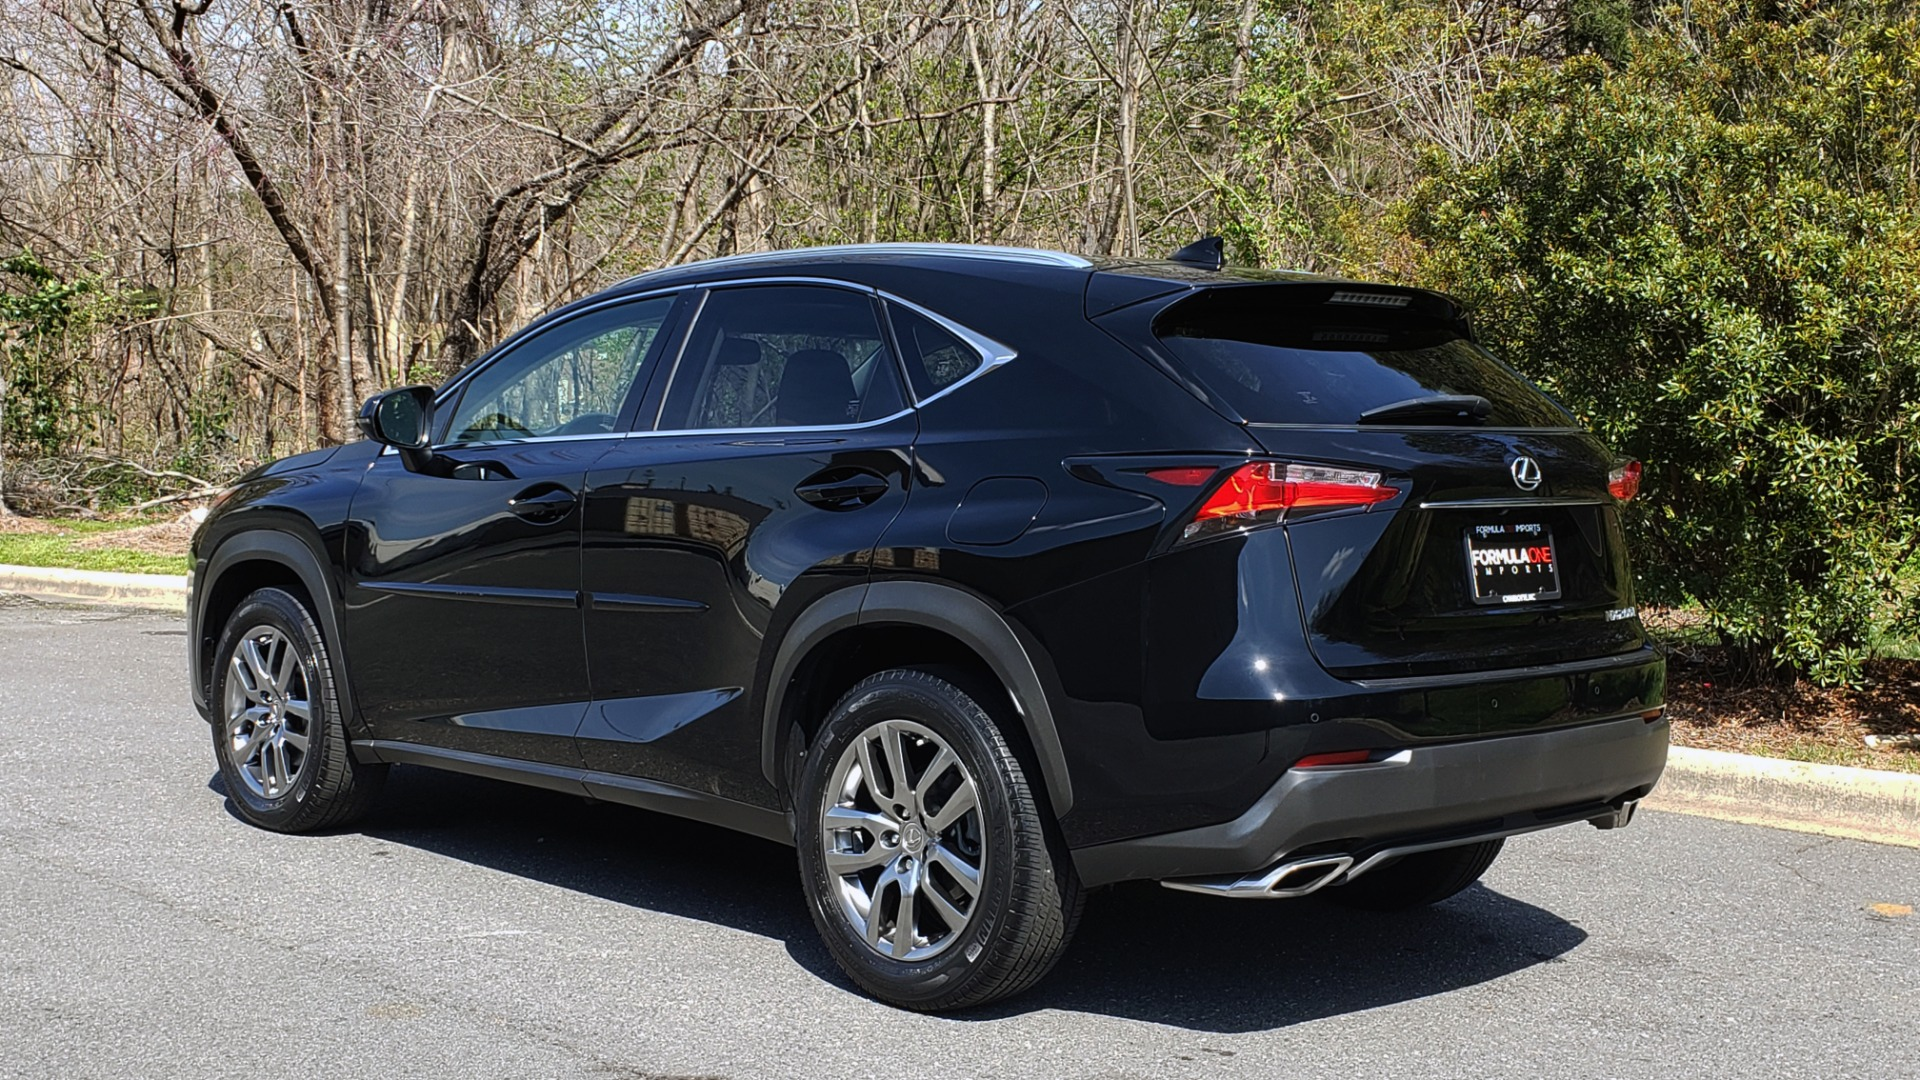 Used 2016 Lexus NX 200T PREM PKG / NAV / SUNROOF / PRE-COLLISION / PARK ASST for sale Sold at Formula Imports in Charlotte NC 28227 3